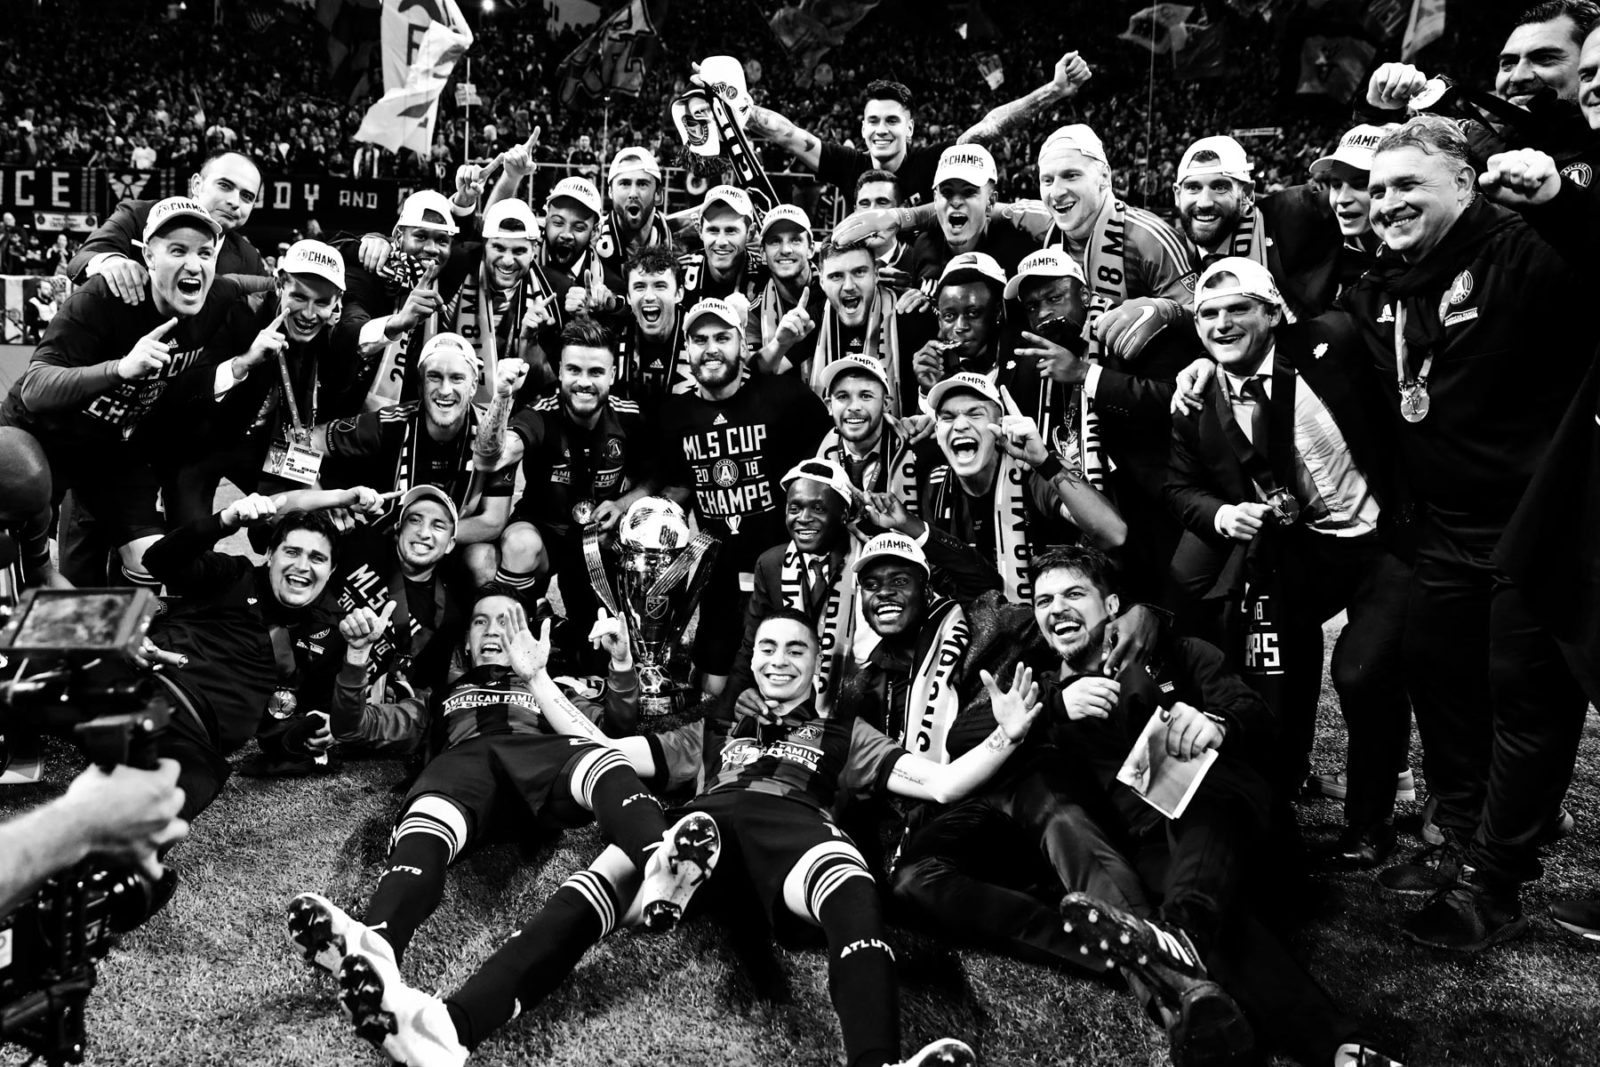 Reigning Champ 2018 MLS Champions Pack Atlanta United